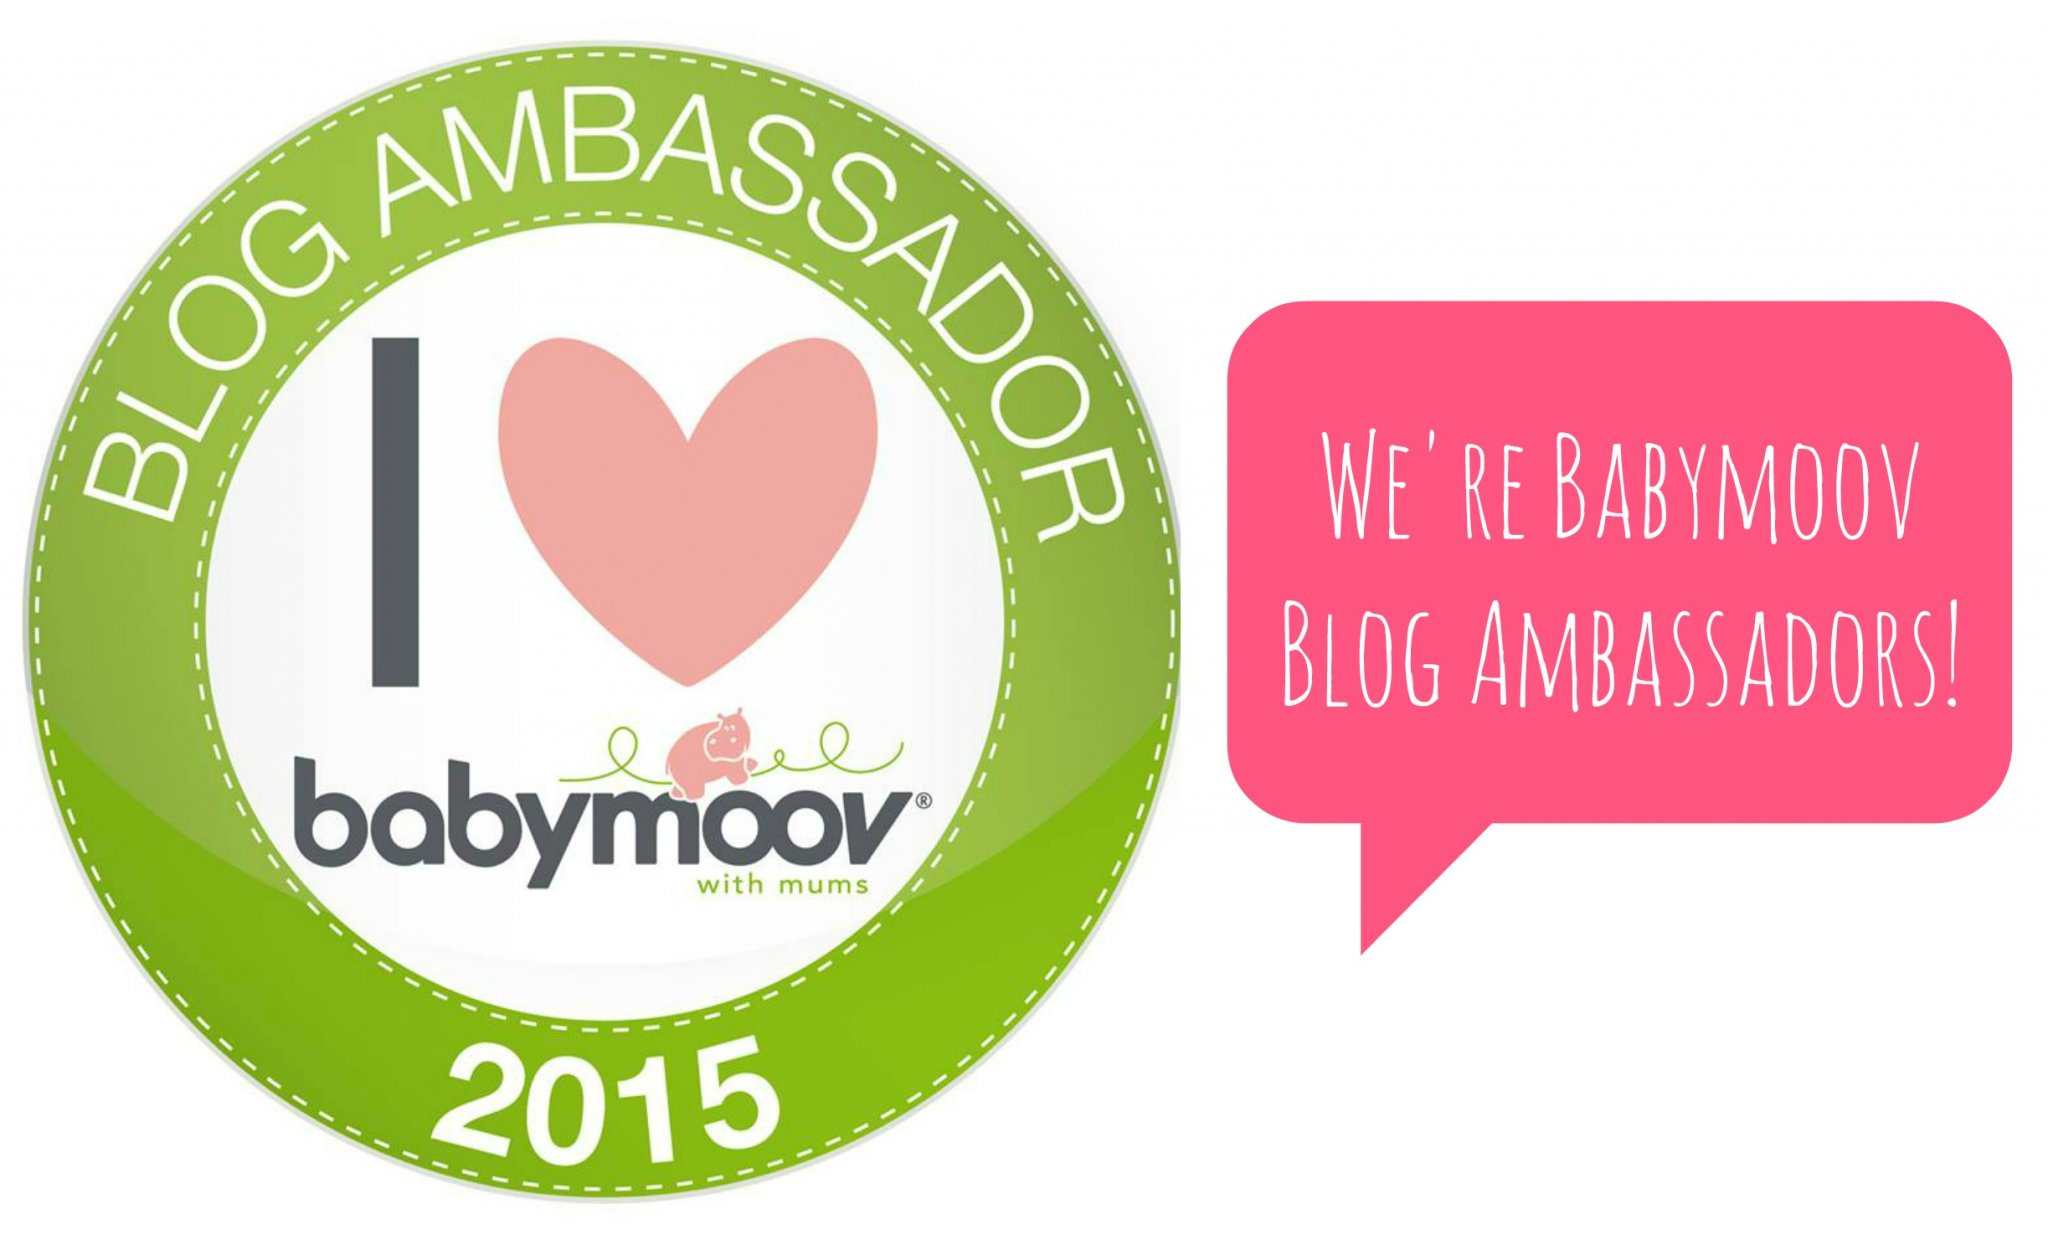 We're Babymoov Blog Ambassadors! www.mamamim.com